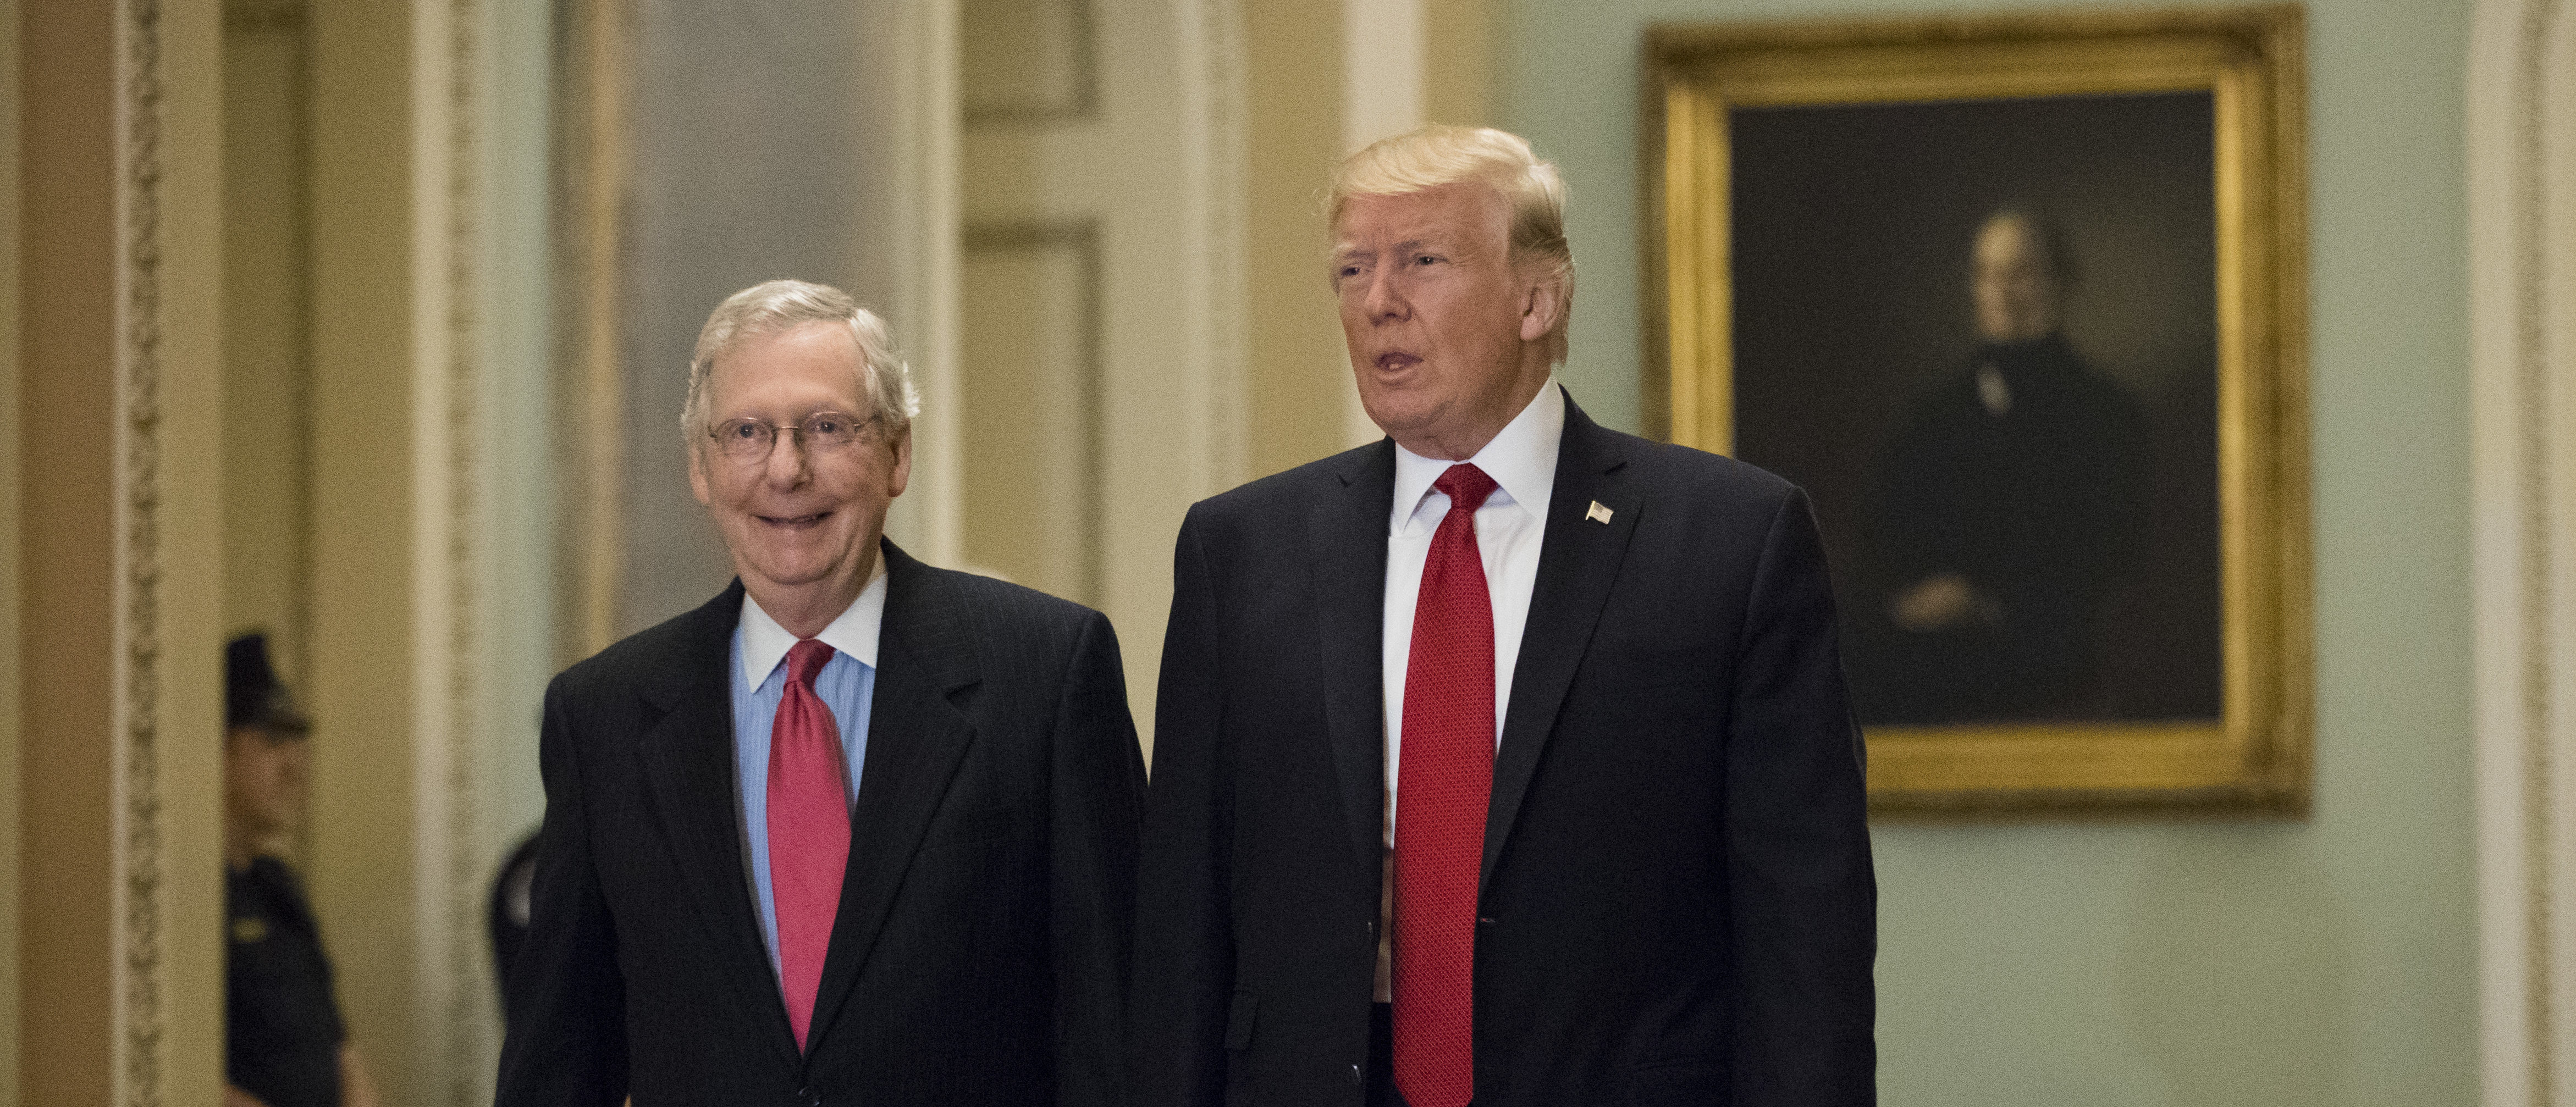 WASHINGTON, DC - OCTOBER 24: U.S. President Donald Trump (R) and Senate Majority Leader Mitch McConnell (R-KY) walk to a lunch with Senate Republicans on Capitol Hill, October 24, 2017 in Washington, DC. Trump joined the senators to talk about upcoming legislation, including the proposed GOP tax cuts and reform. (Photo by Drew Angerer/Getty Images)